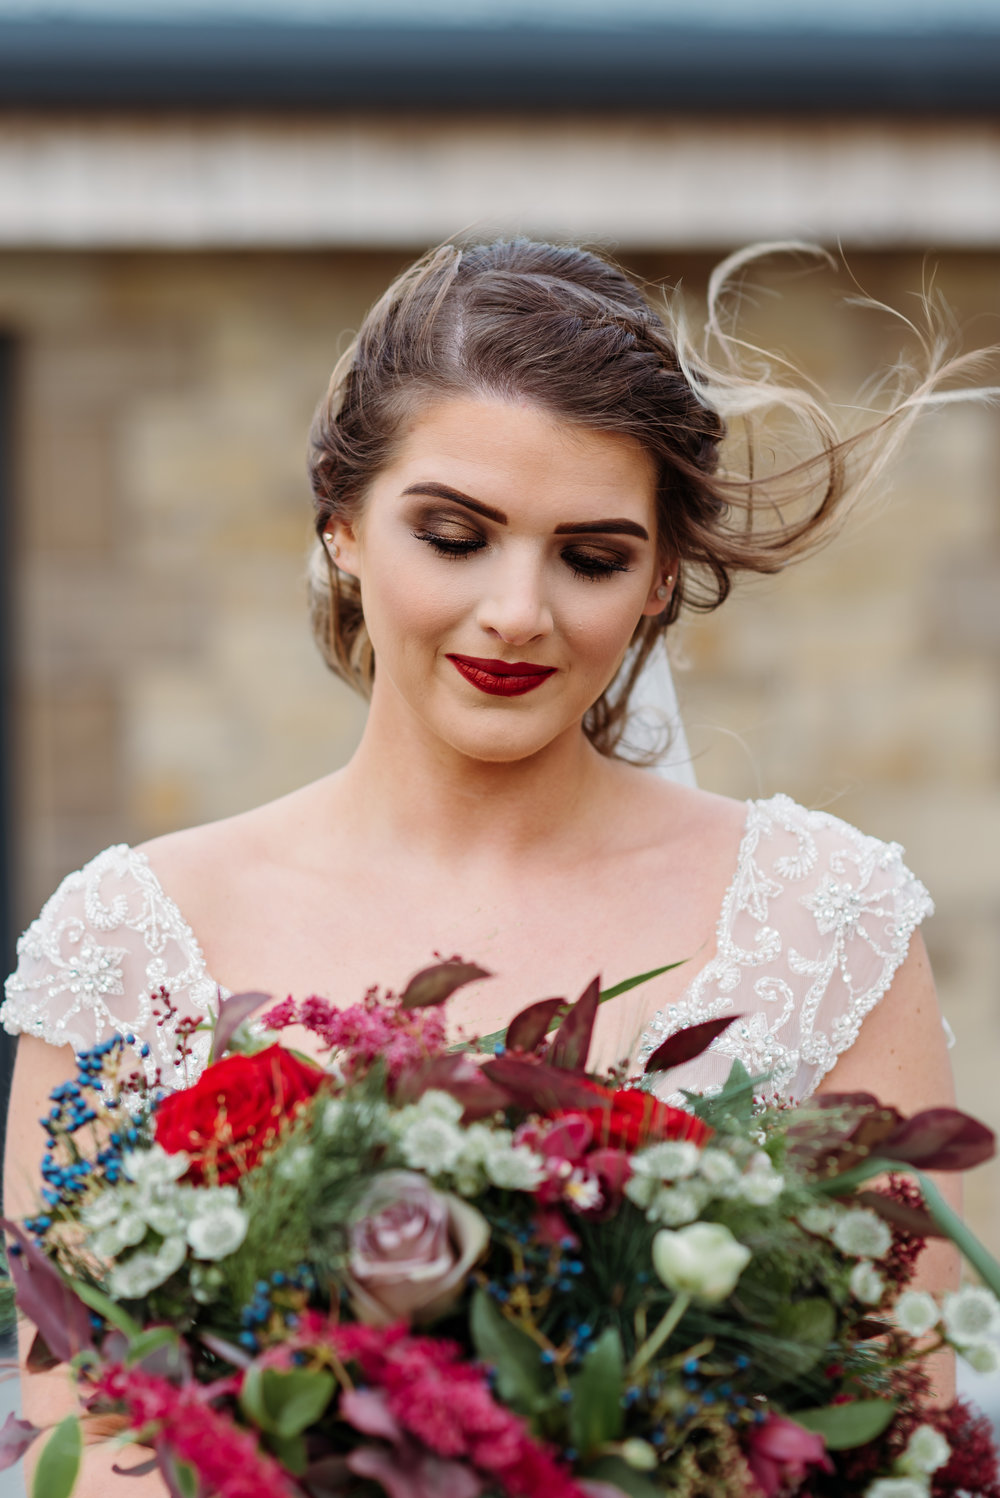 Natural wedding photographer - Clitheroe